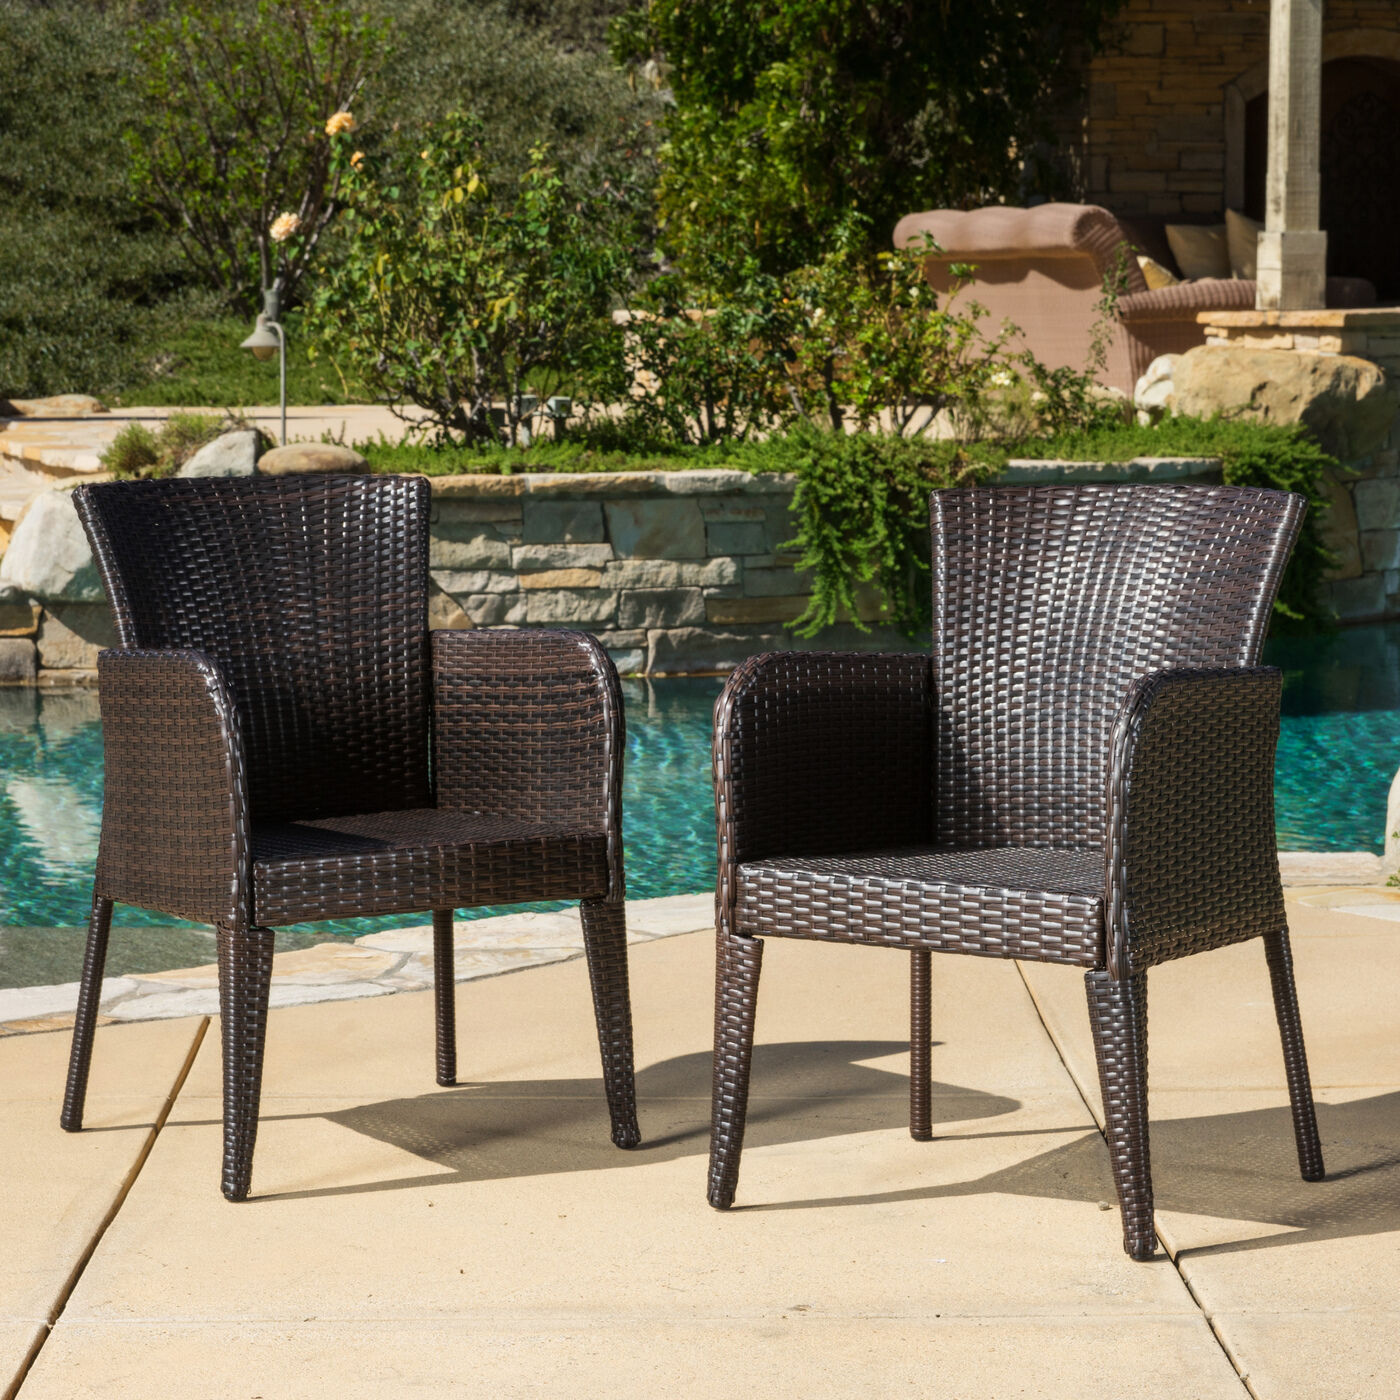 outdoor wicker patio furniture year of clean water rh yearofcleanwater org